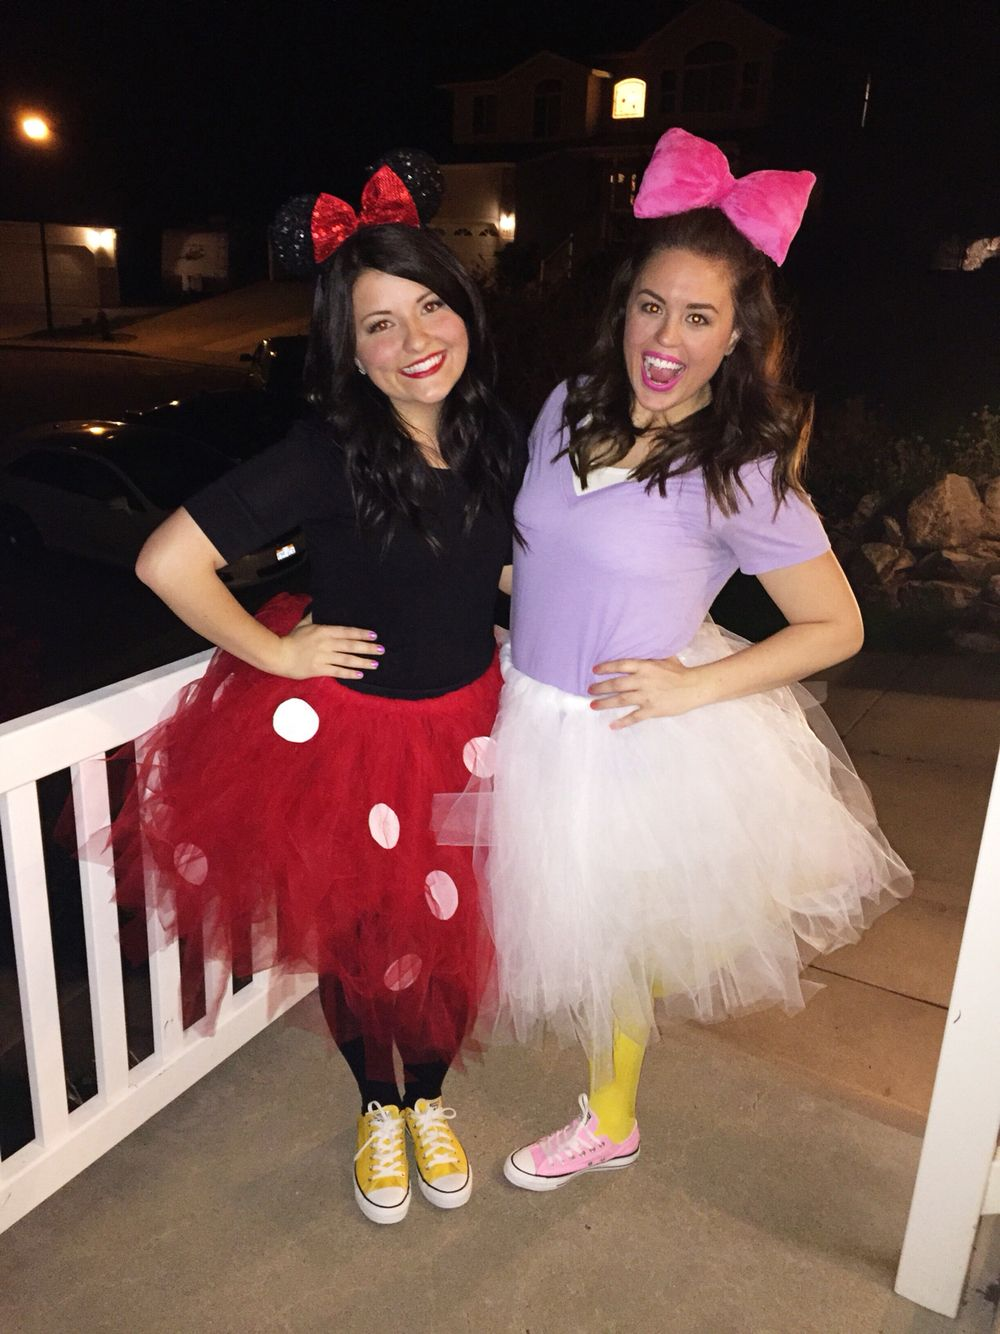 Best friend costumes!  sc 1 st  Pinterest & Minnie Mouse and Daisy Duck. Best friend costumes! | Holla-Daze ...